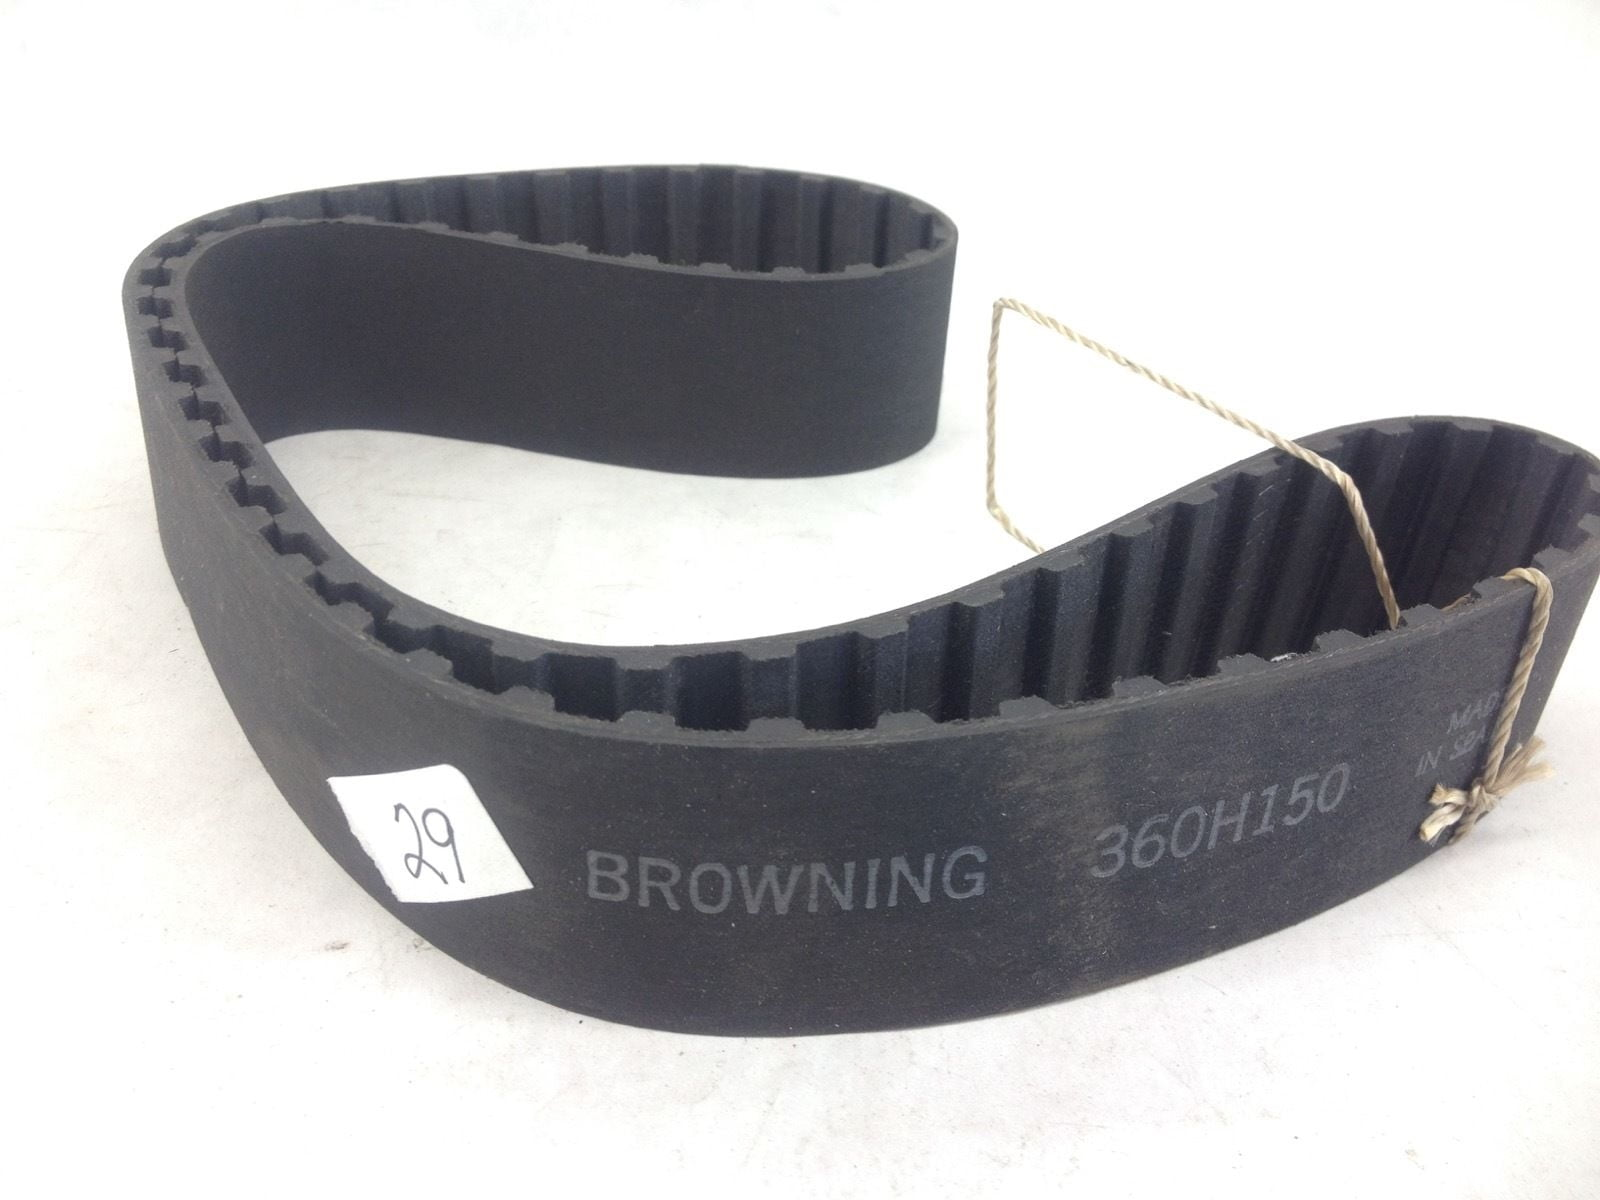 Browning Timing Belts Image Of Belt Pulley B177814m55 Gear 84